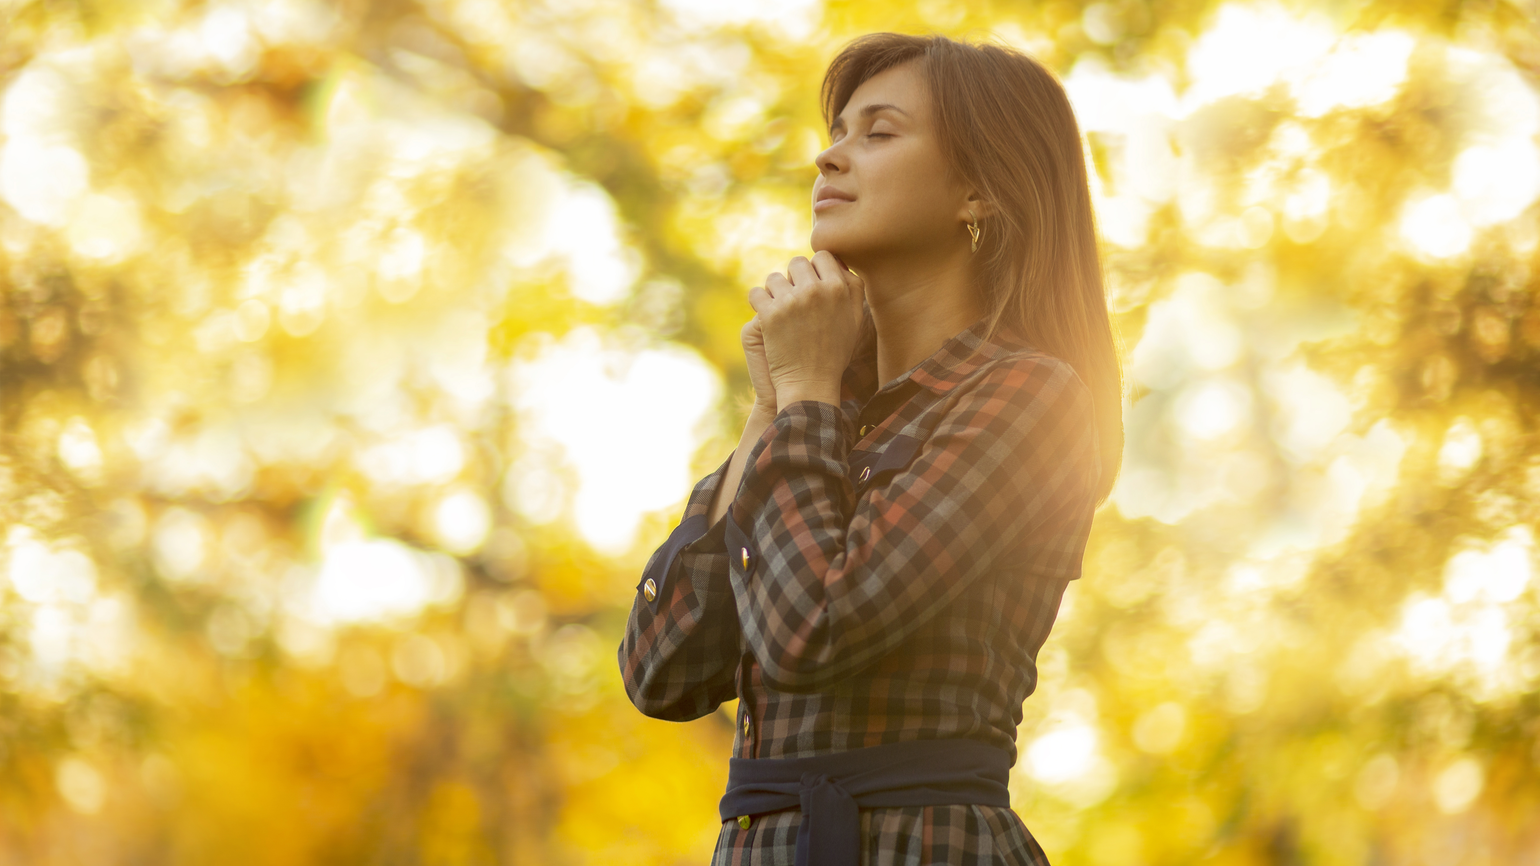 Norman Vincent Peale: Let Gratitude Shine in Your Life